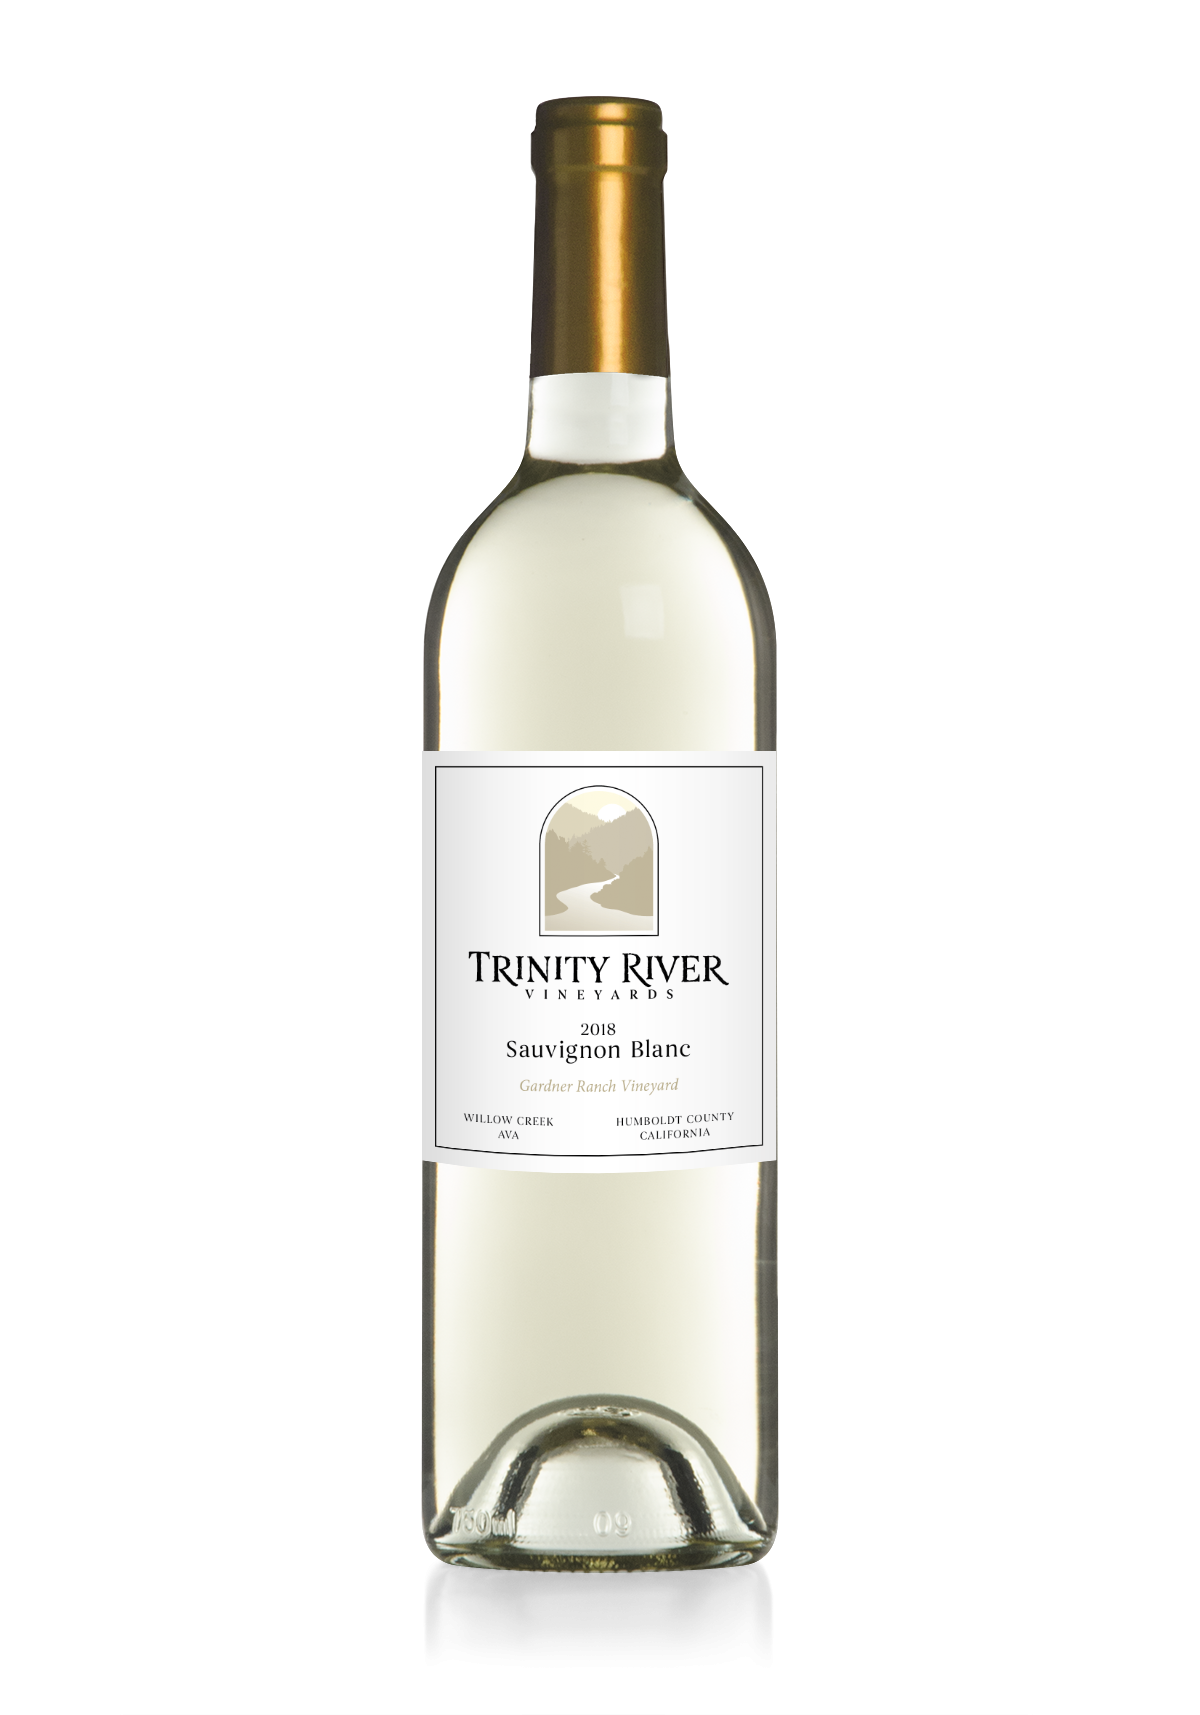 Reserve Sauvignon Blanc - 2018   The 2018 Sauvignon Blanc was picked and co-fermented with 5% Semillon, giving our Sauvignon Blanc a slightly rounder mouthfeel. It has a delicate bouquet of citrus blossom with flavors of lime and smooth icy mint. This is a crisp, non-oaked Sauvignon Blanc more reminiscent white Bordeaux, than a grassy Sauvignon Blanc of Marlborough, New Zealand.